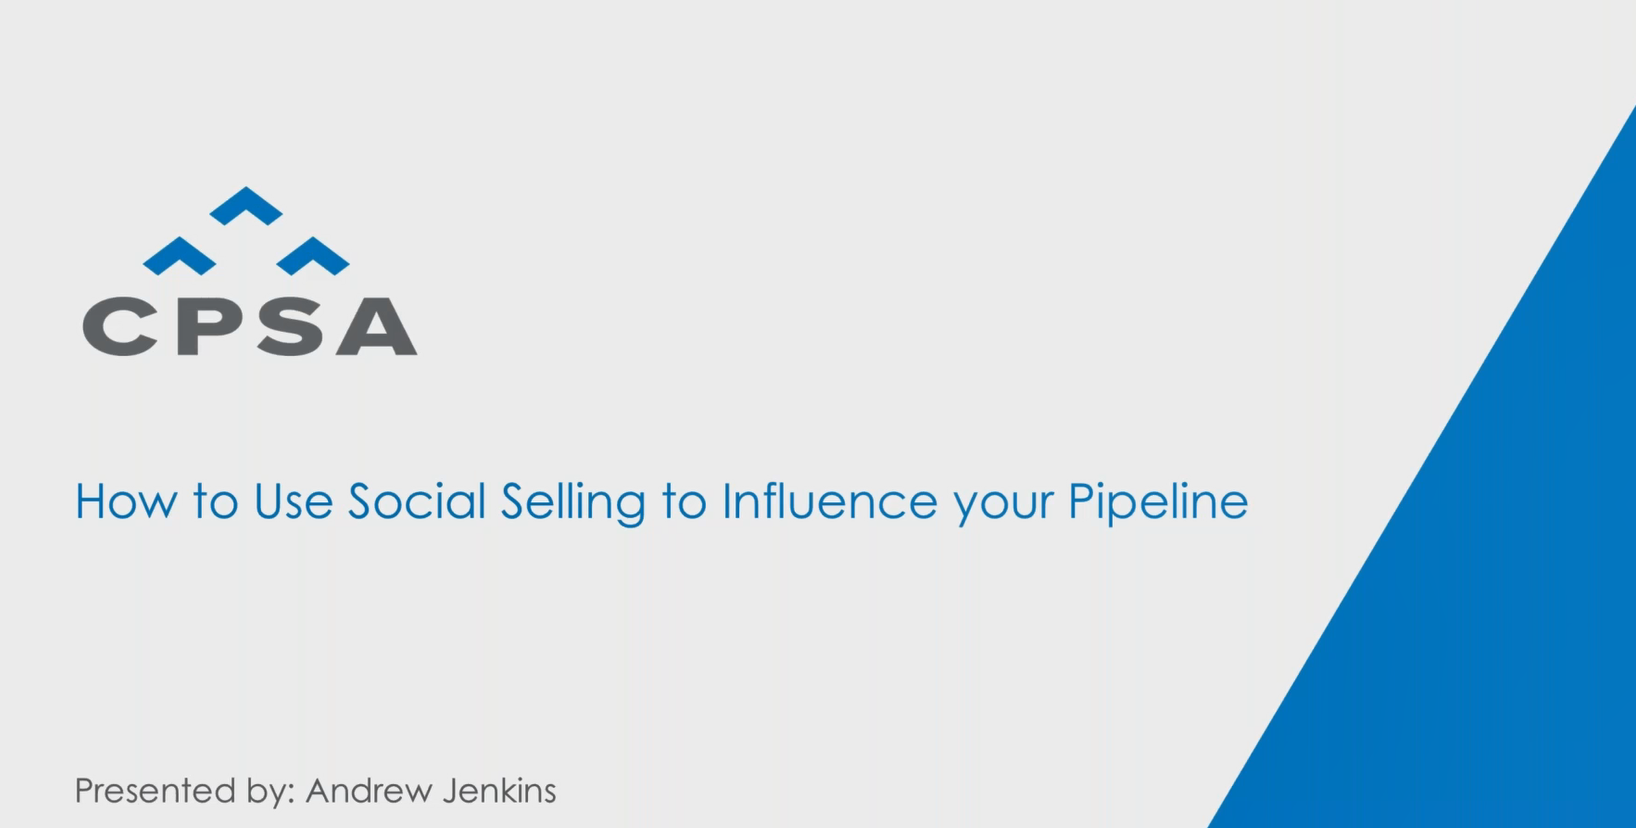 CPSA Webinar Recording - How to Use Social Selling to Influence your Pipeline